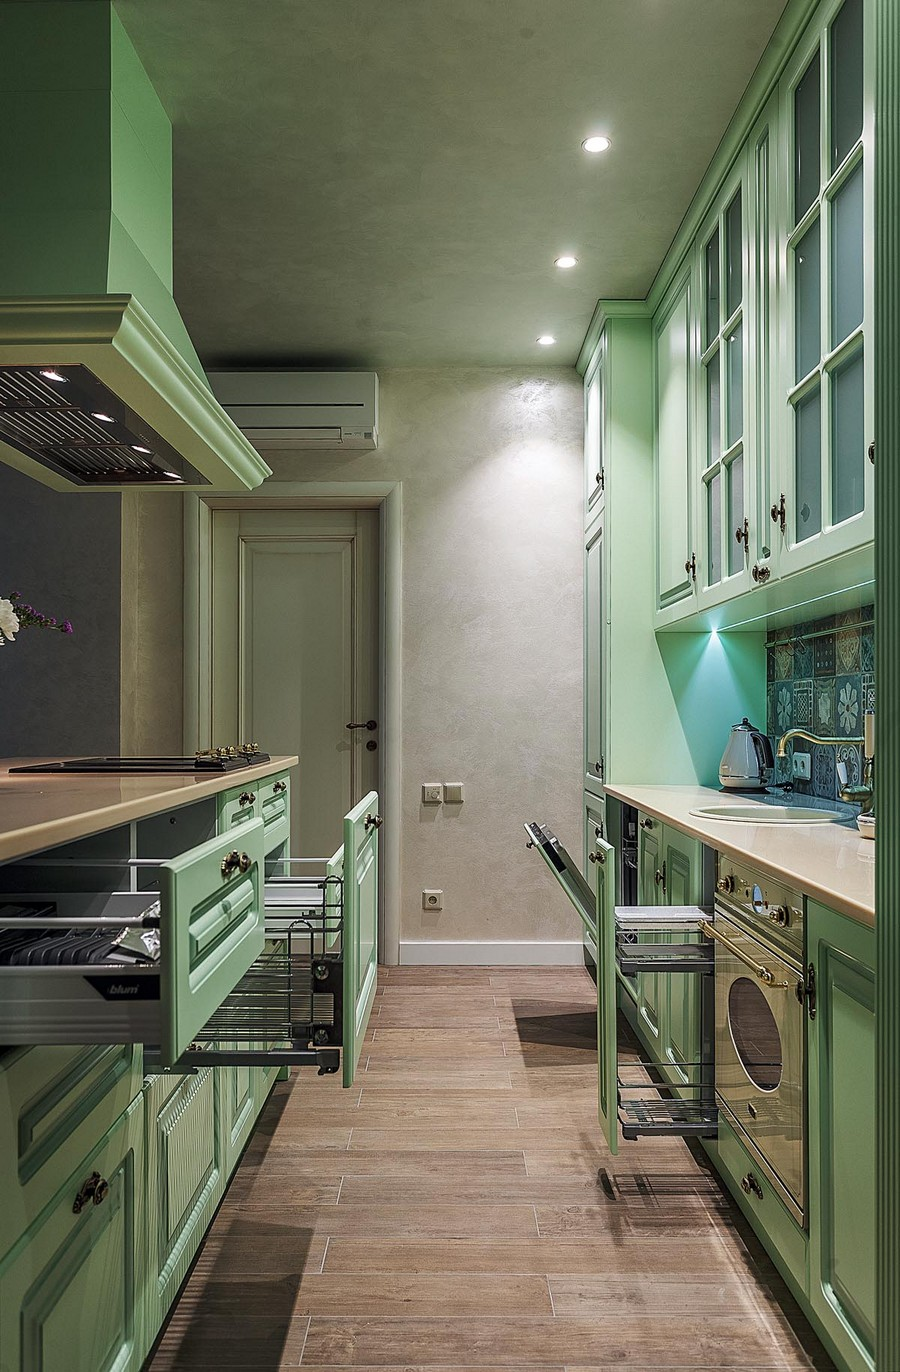 2-pale-mint-green-kitchen-interior-design-in-Mediterranean-style-island-soild-wood-cabinets-beige-worktop-cooker-hood-glass-cabinets-drawers-stove-brass-faucet-handles-rails